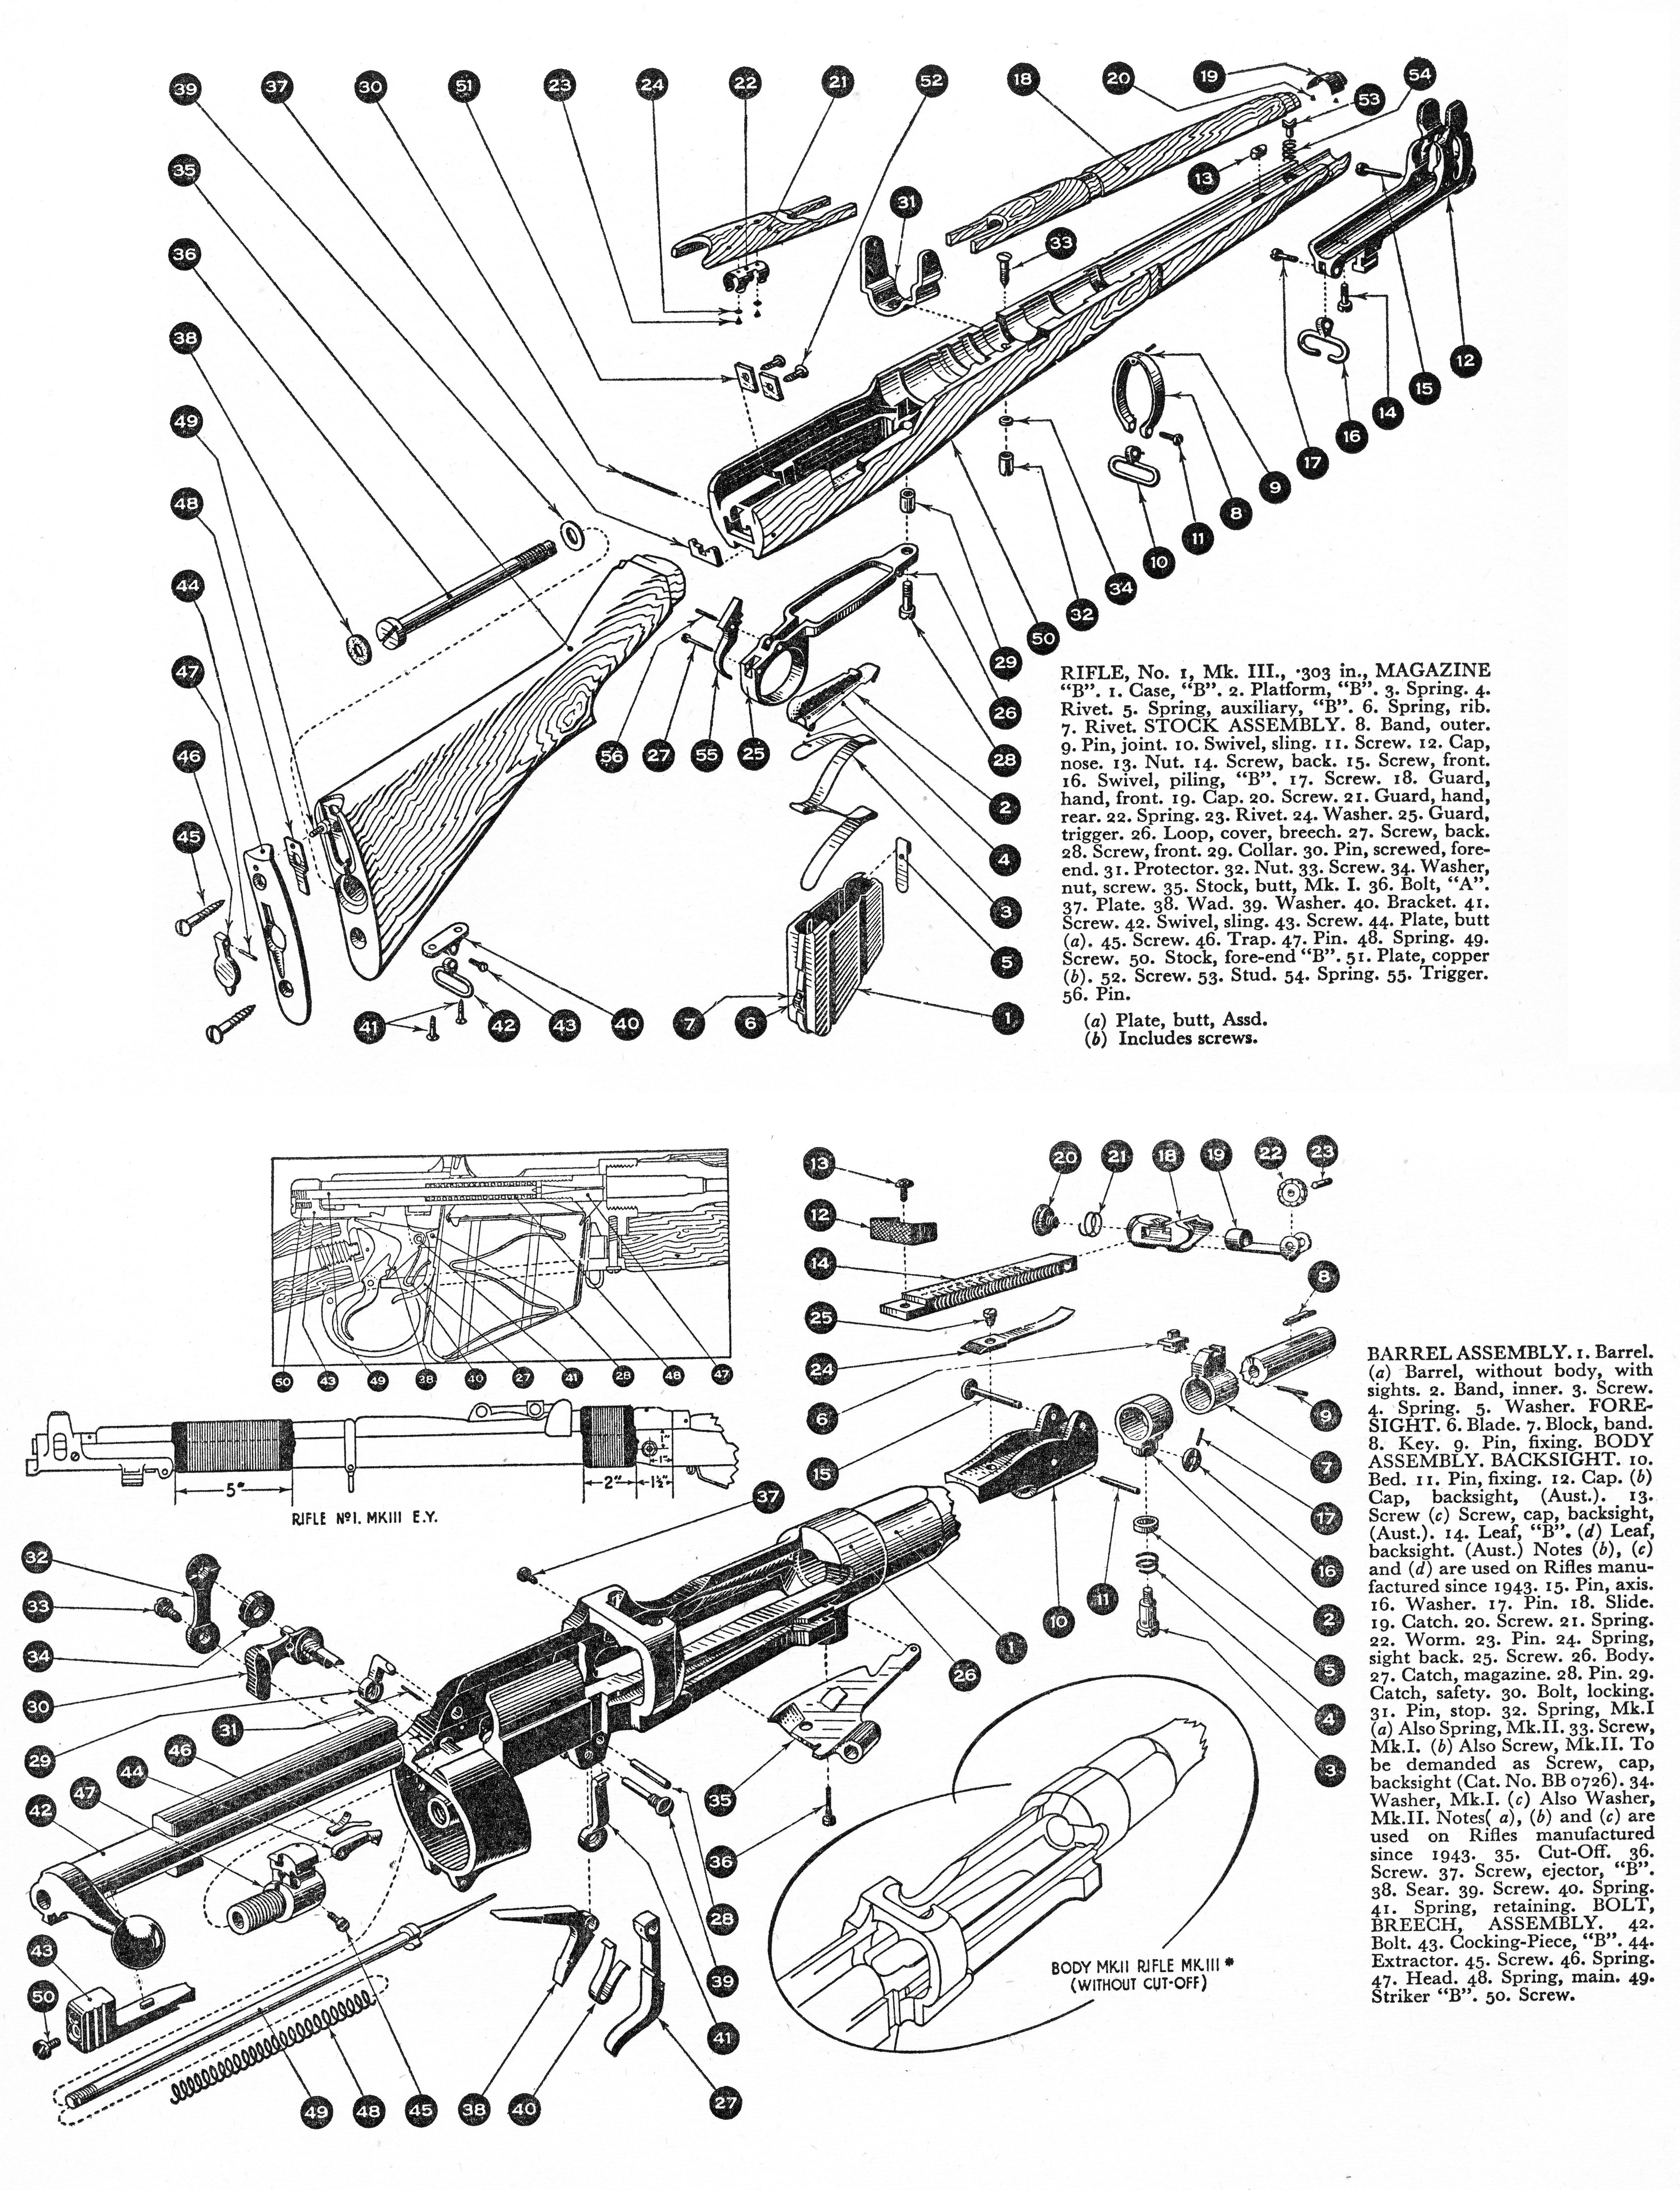 small resolution of detailed parts diagram of rifle no 1 mkiii smle 303in with cut off